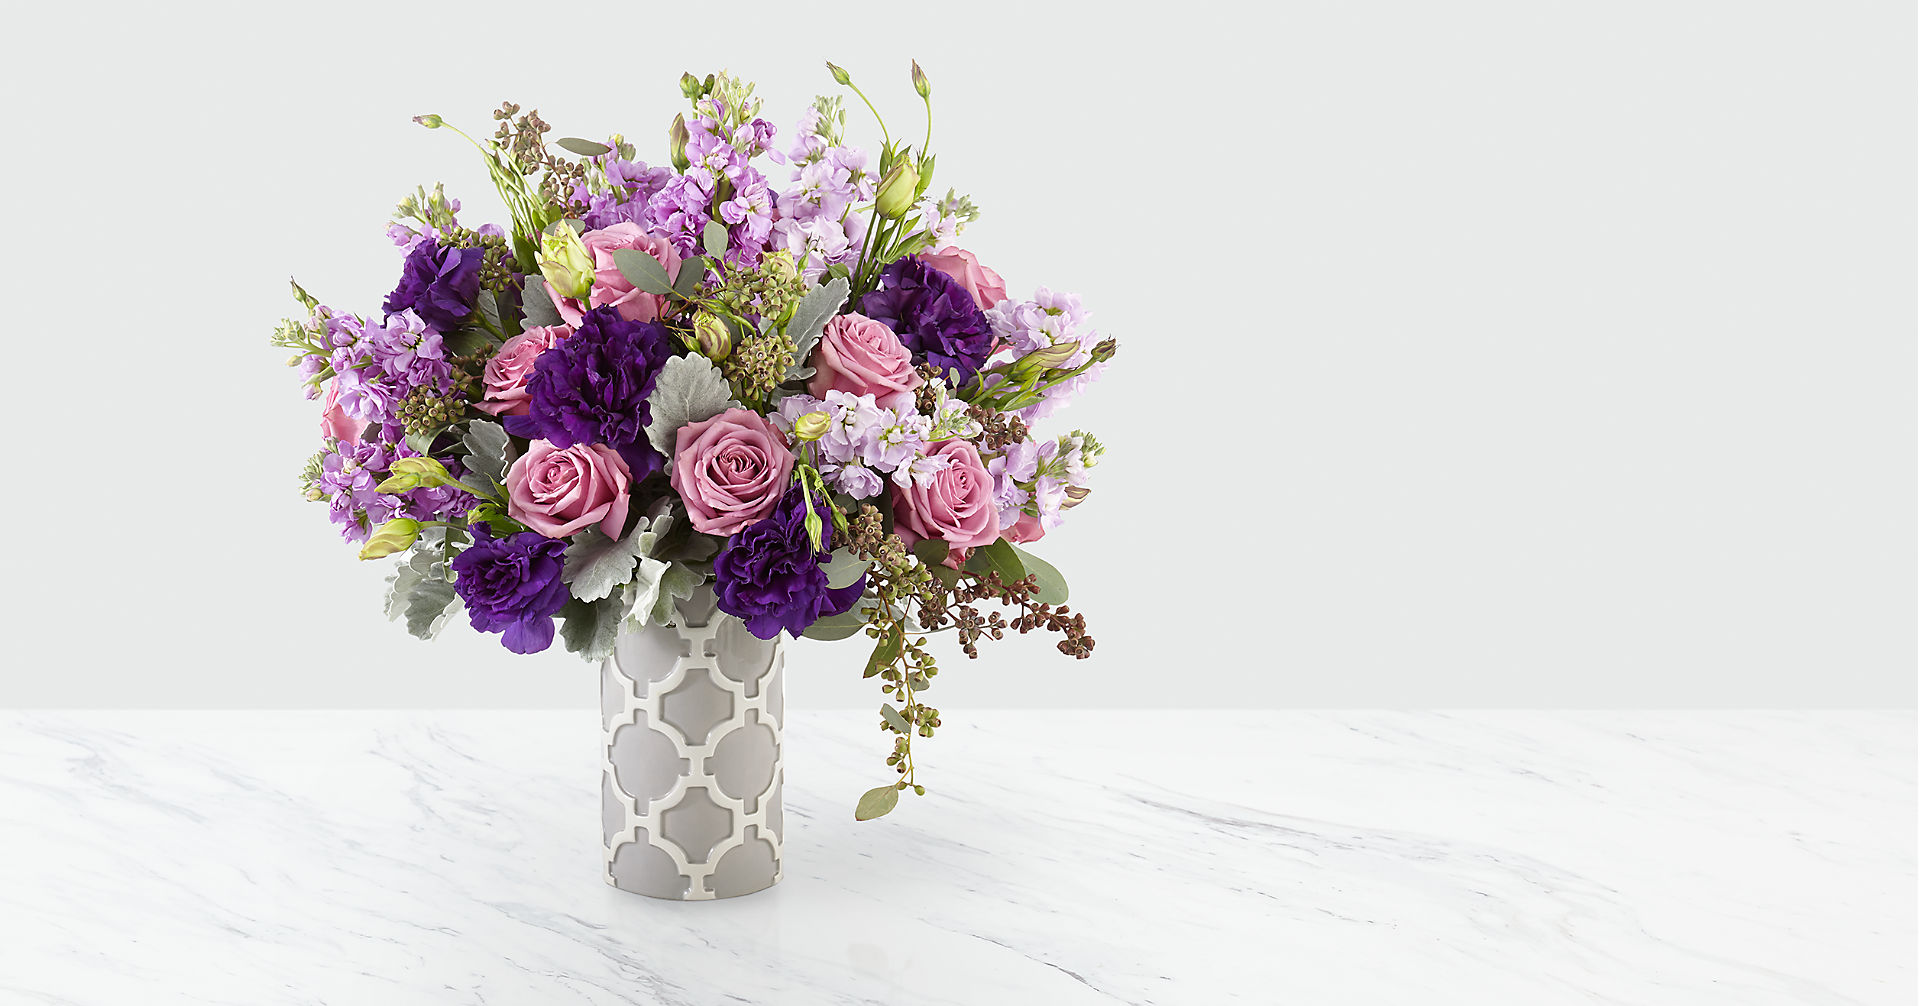 Mademoiselle™ Luxury Bouquet - Deluxe - Image 1 Of 3